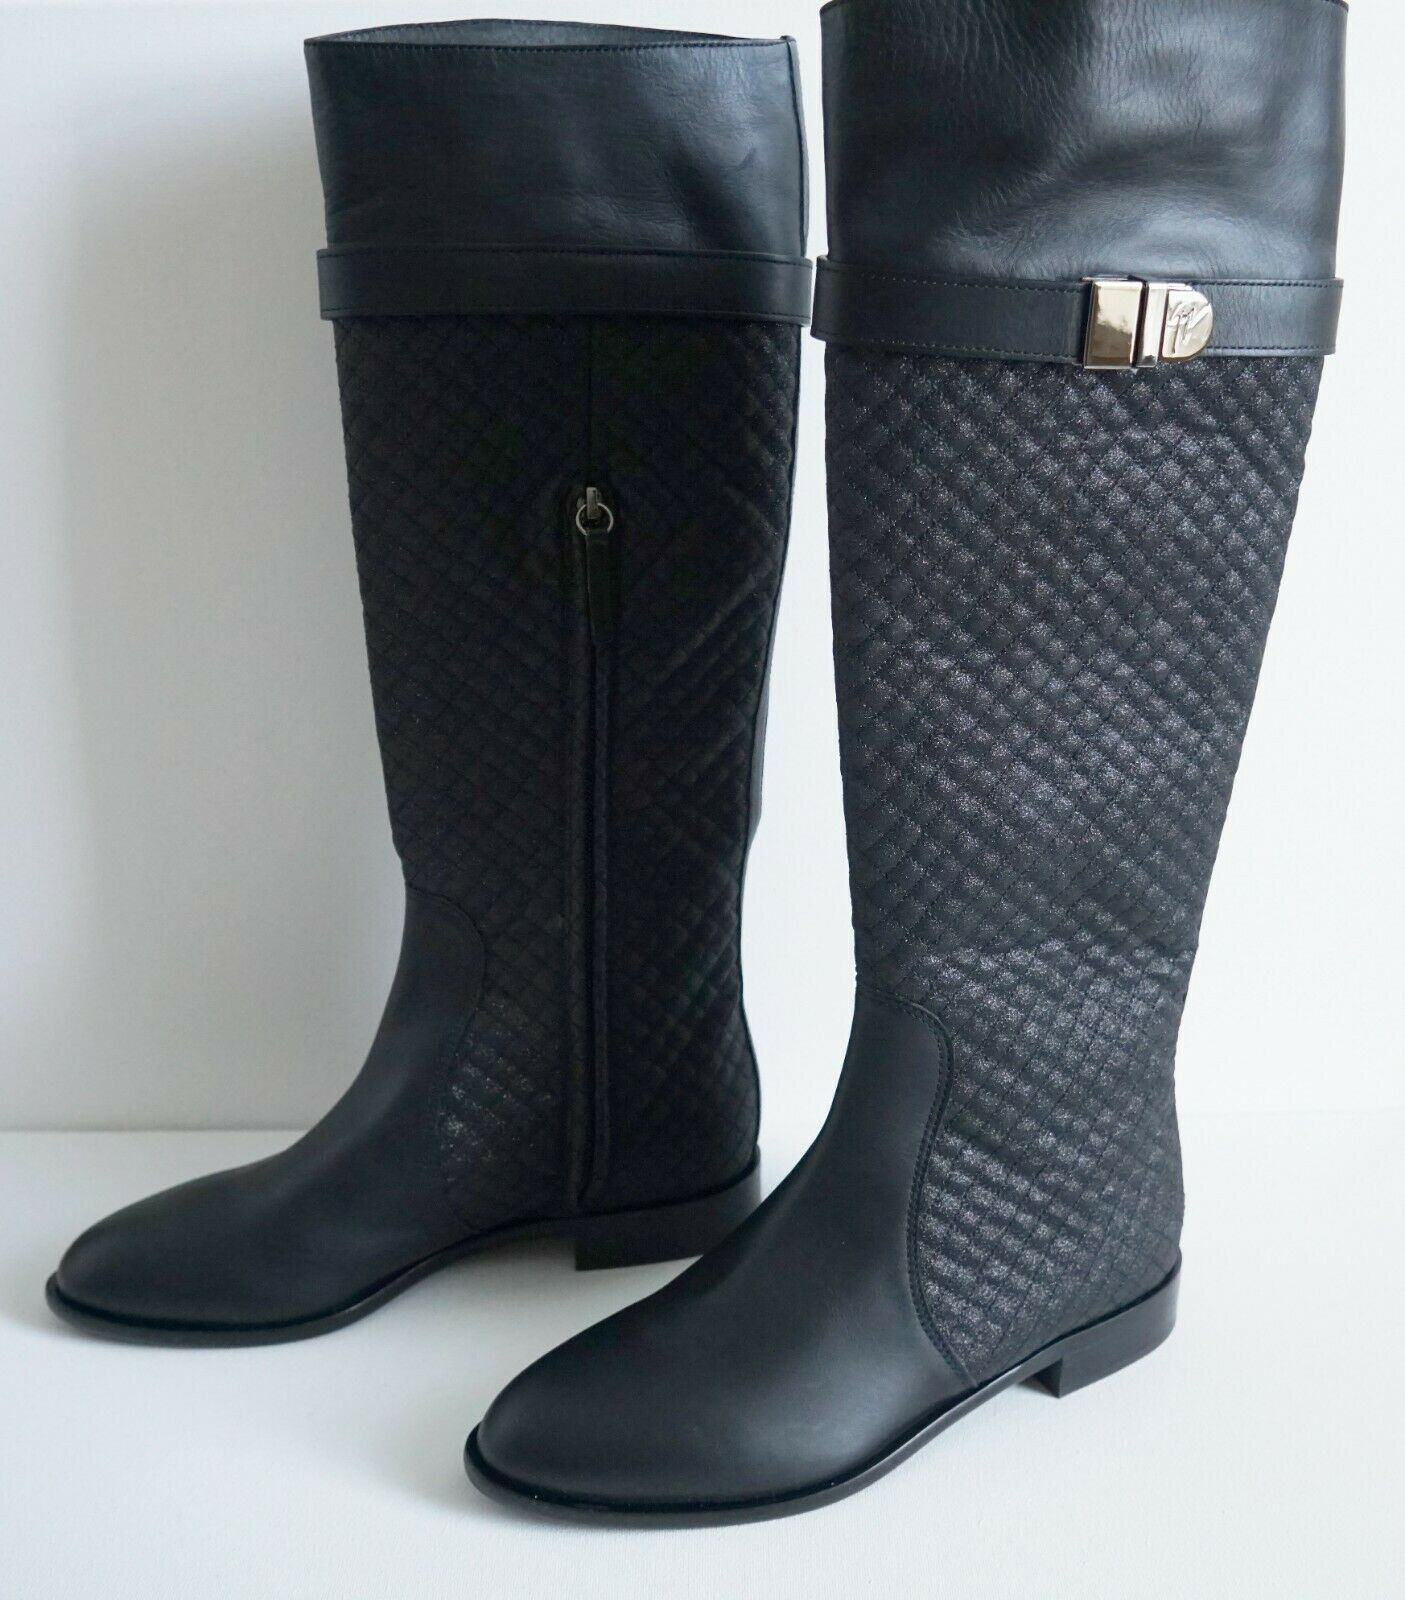 1395 GIUSEPPE ZANOTTI Black QUILTED MOTO RIDING Style Tall Boots EU-38 US-8